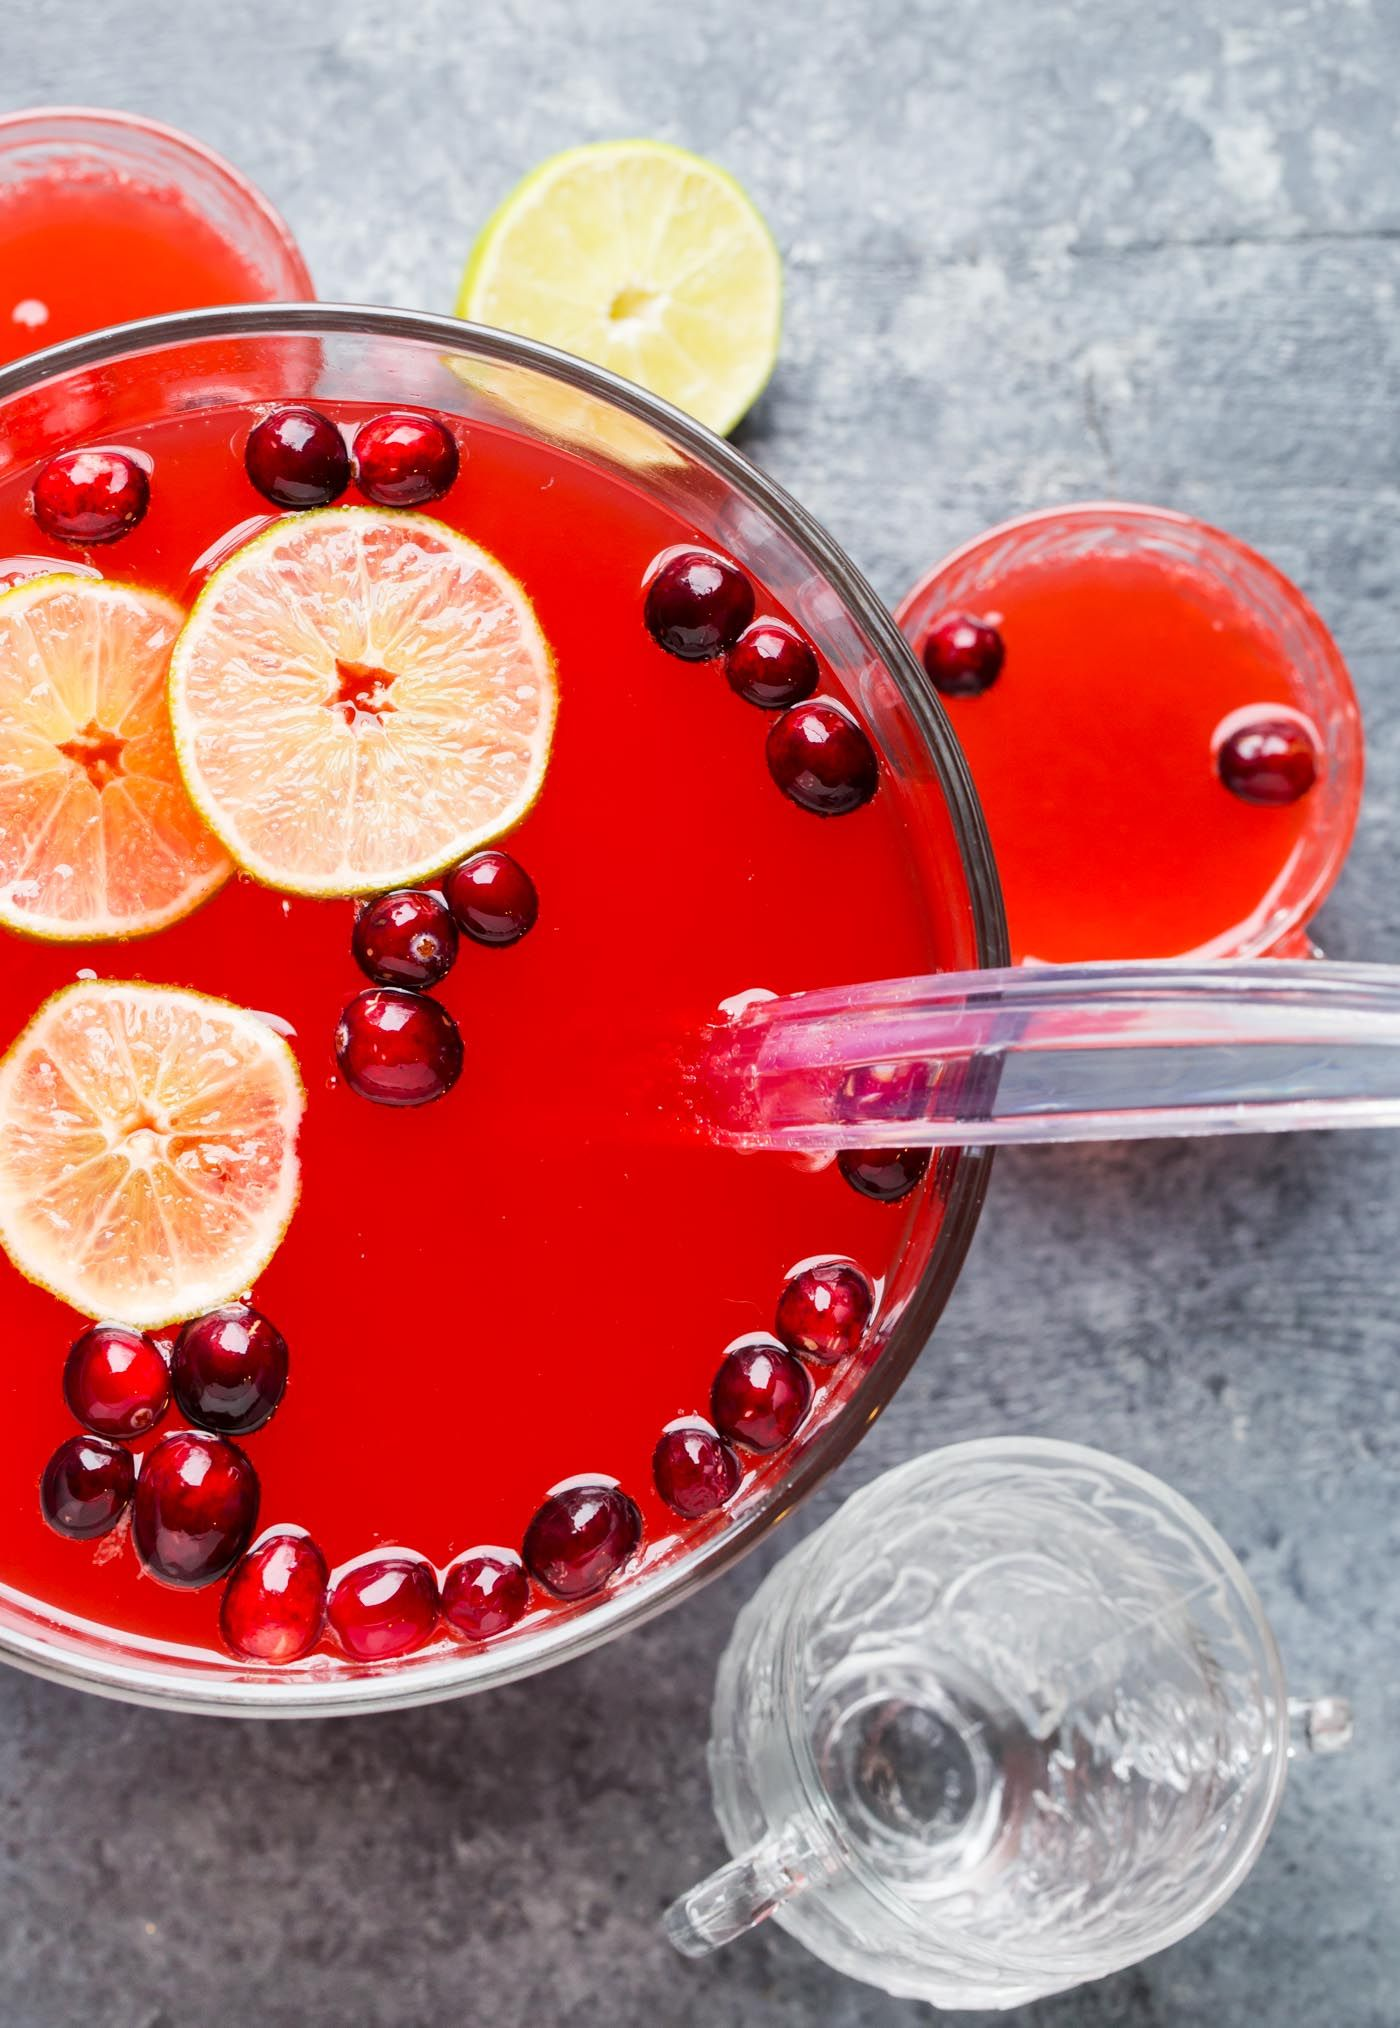 Need An Easy Batch Cocktail For The Holidays Your Search Is Over With This Boozy Cranberry Punch Cranberry Punch Holiday Drinks Christmas Food